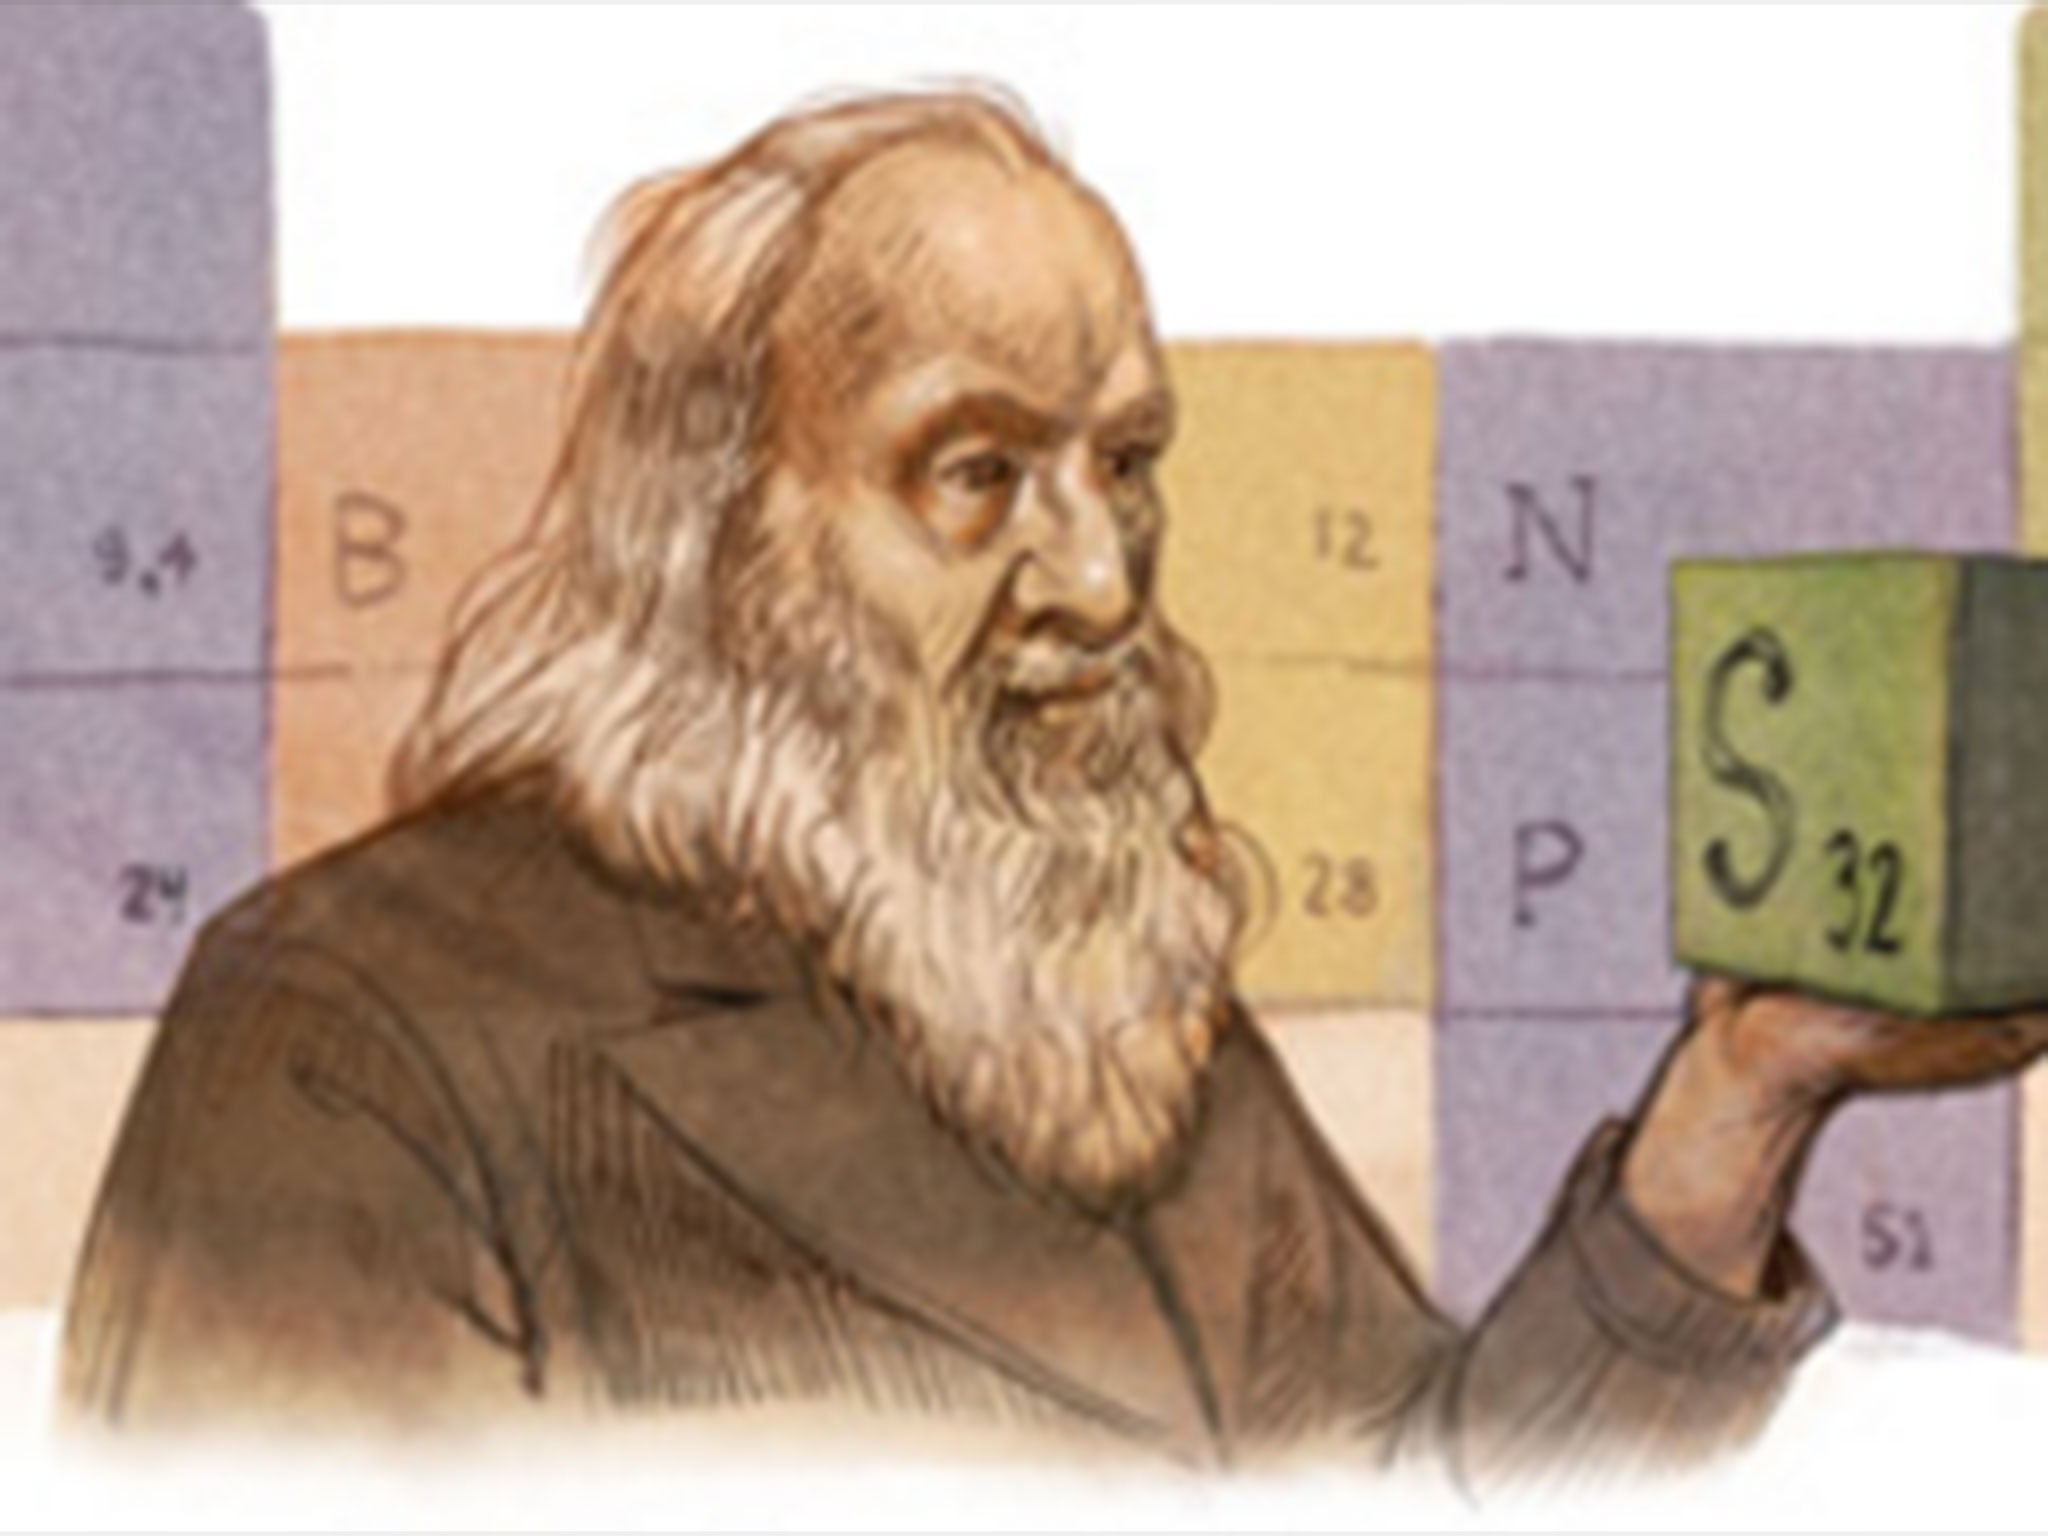 Dmitri mendeleev five facts you possibly didnt know about the dmitri mendeleev five facts you possibly didnt know about the periodic table the independent gamestrikefo Gallery